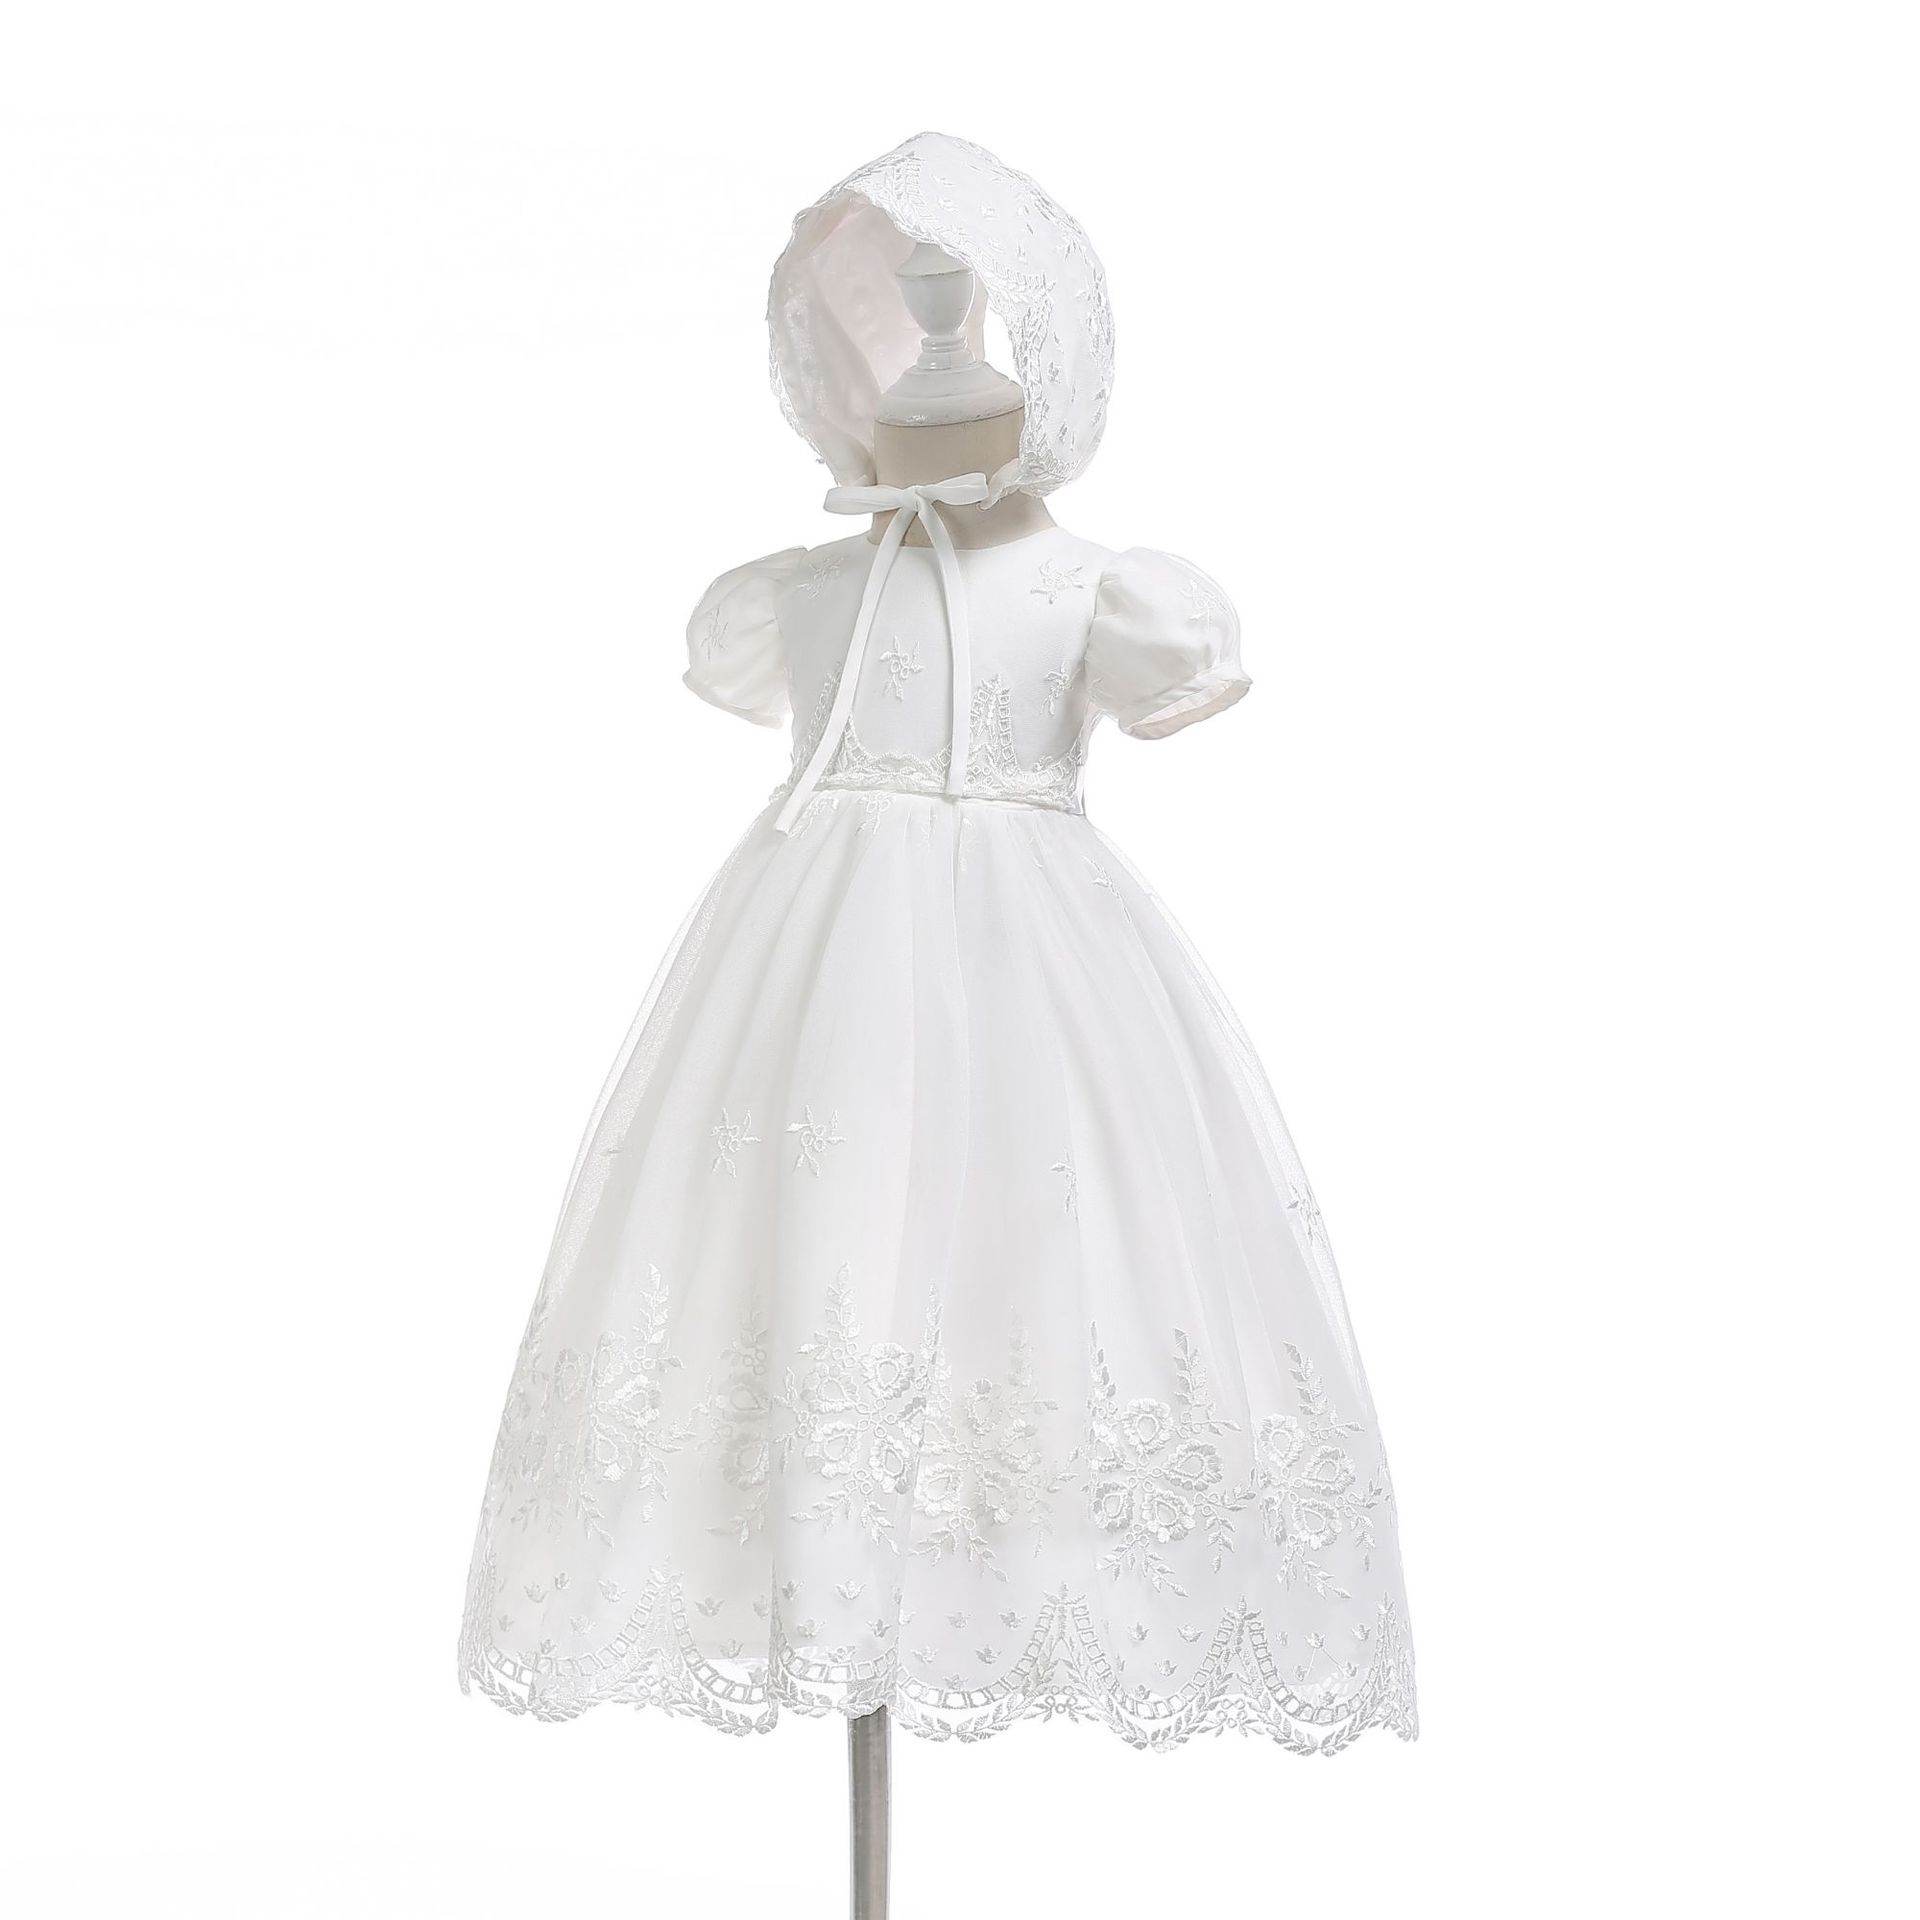 White Birthday Baby Girls Dress Long Floor Baby Girl Baptism Christening Clothes 2018 Newborn Clothes 3 6 12 24 Month 184042 недорого